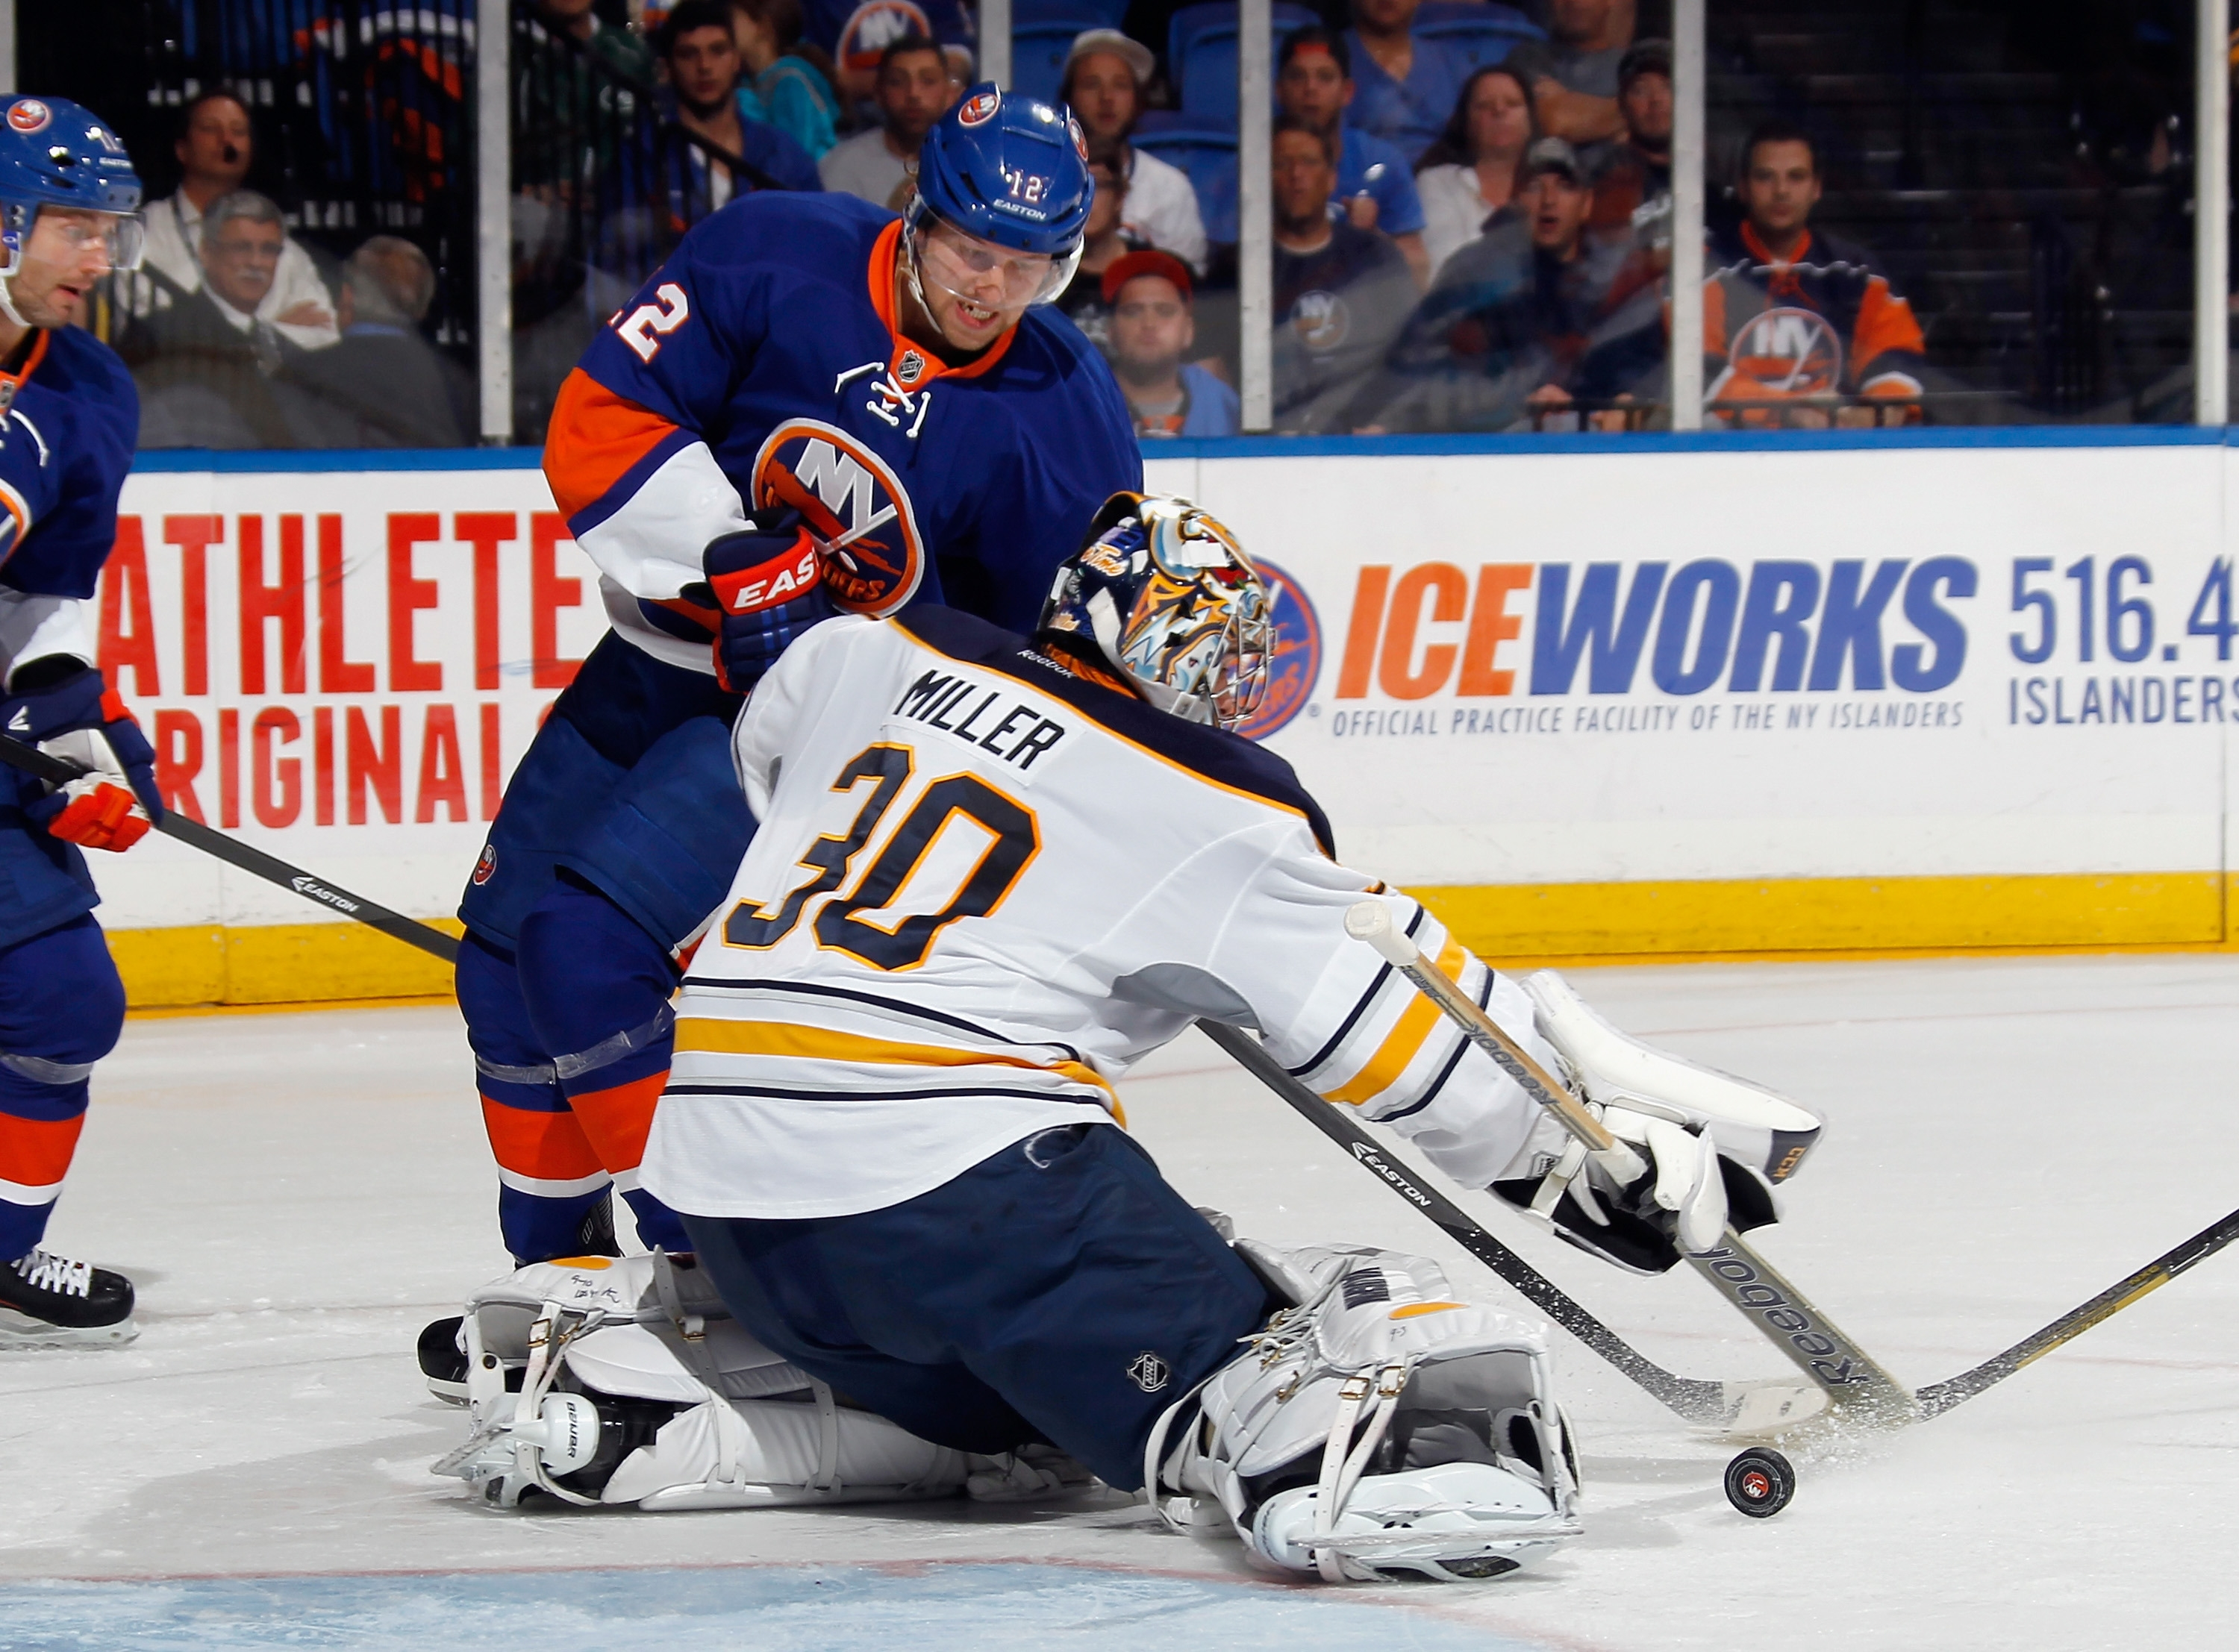 Sabres' goalie Ryan Miller stops a shot by Josh Bailey of the Islanders during Tuesday night's game in Uniondale.